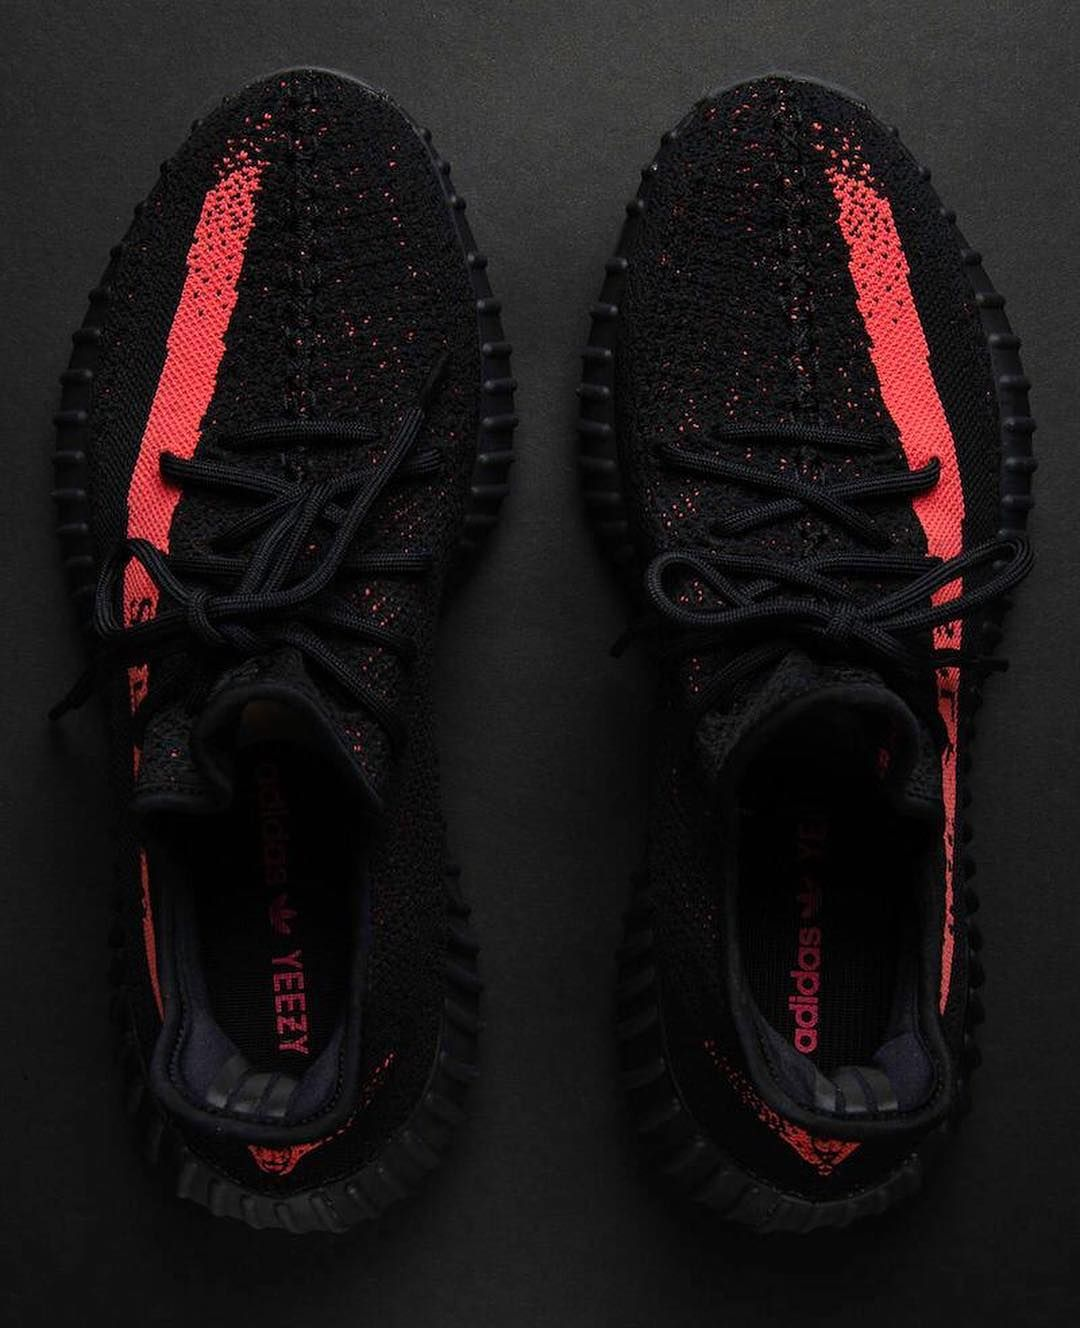 8bc77c20d Watch the Best YouTube Videos Online - Yeezy Black Friday limited edition  sneakers available now with